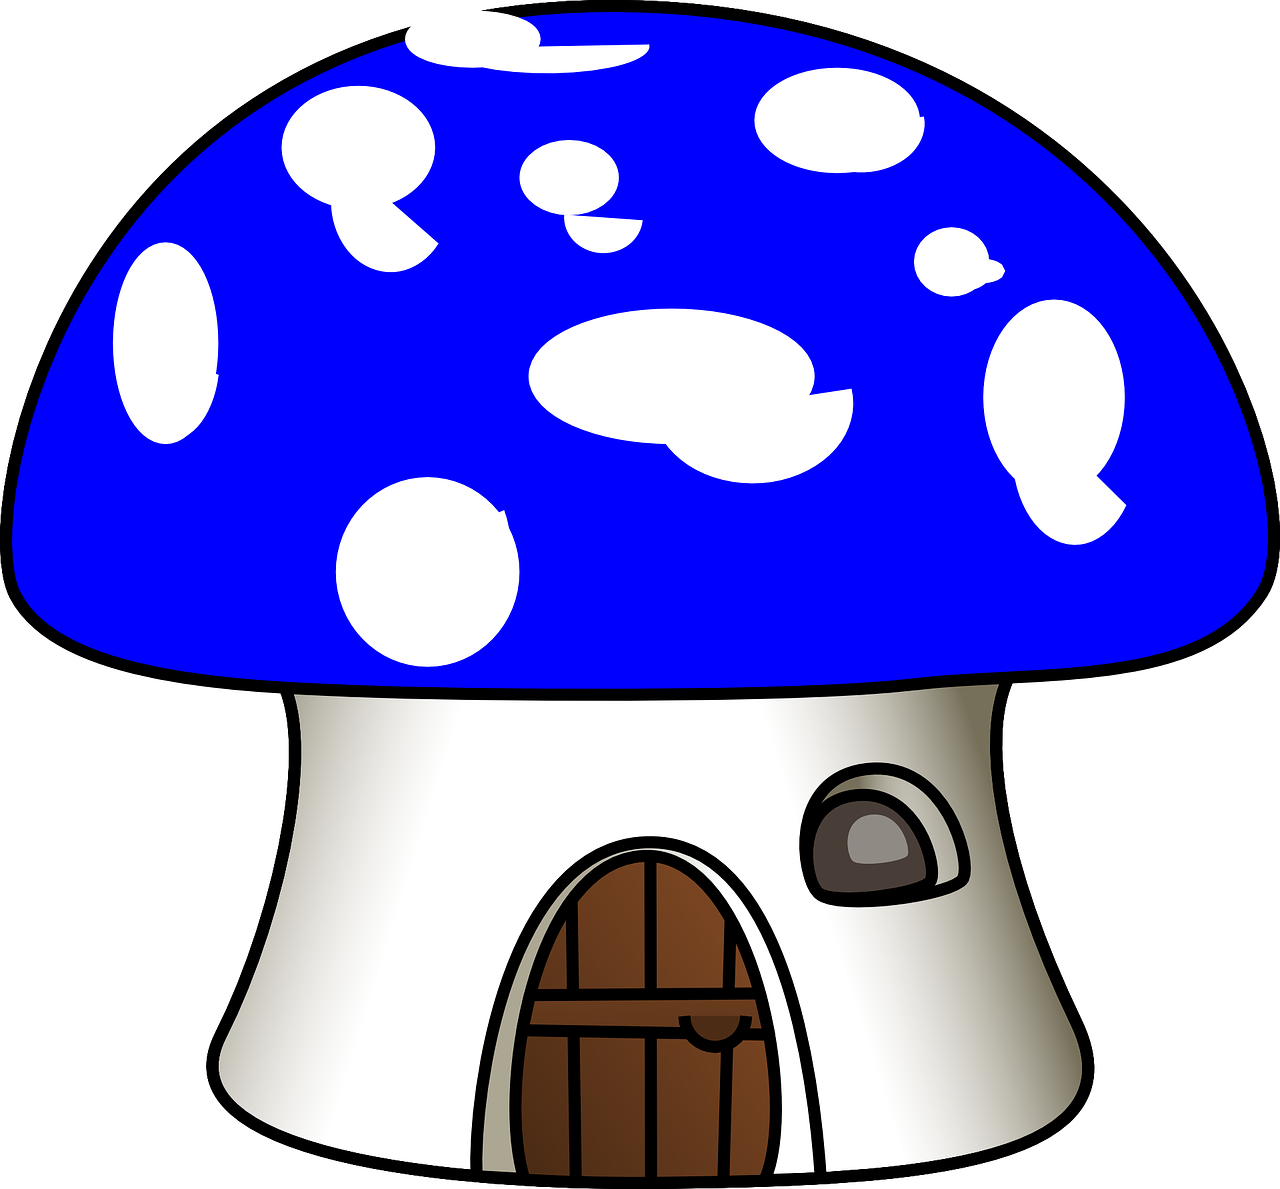 Igloo clipart real. Mushroom house clip art